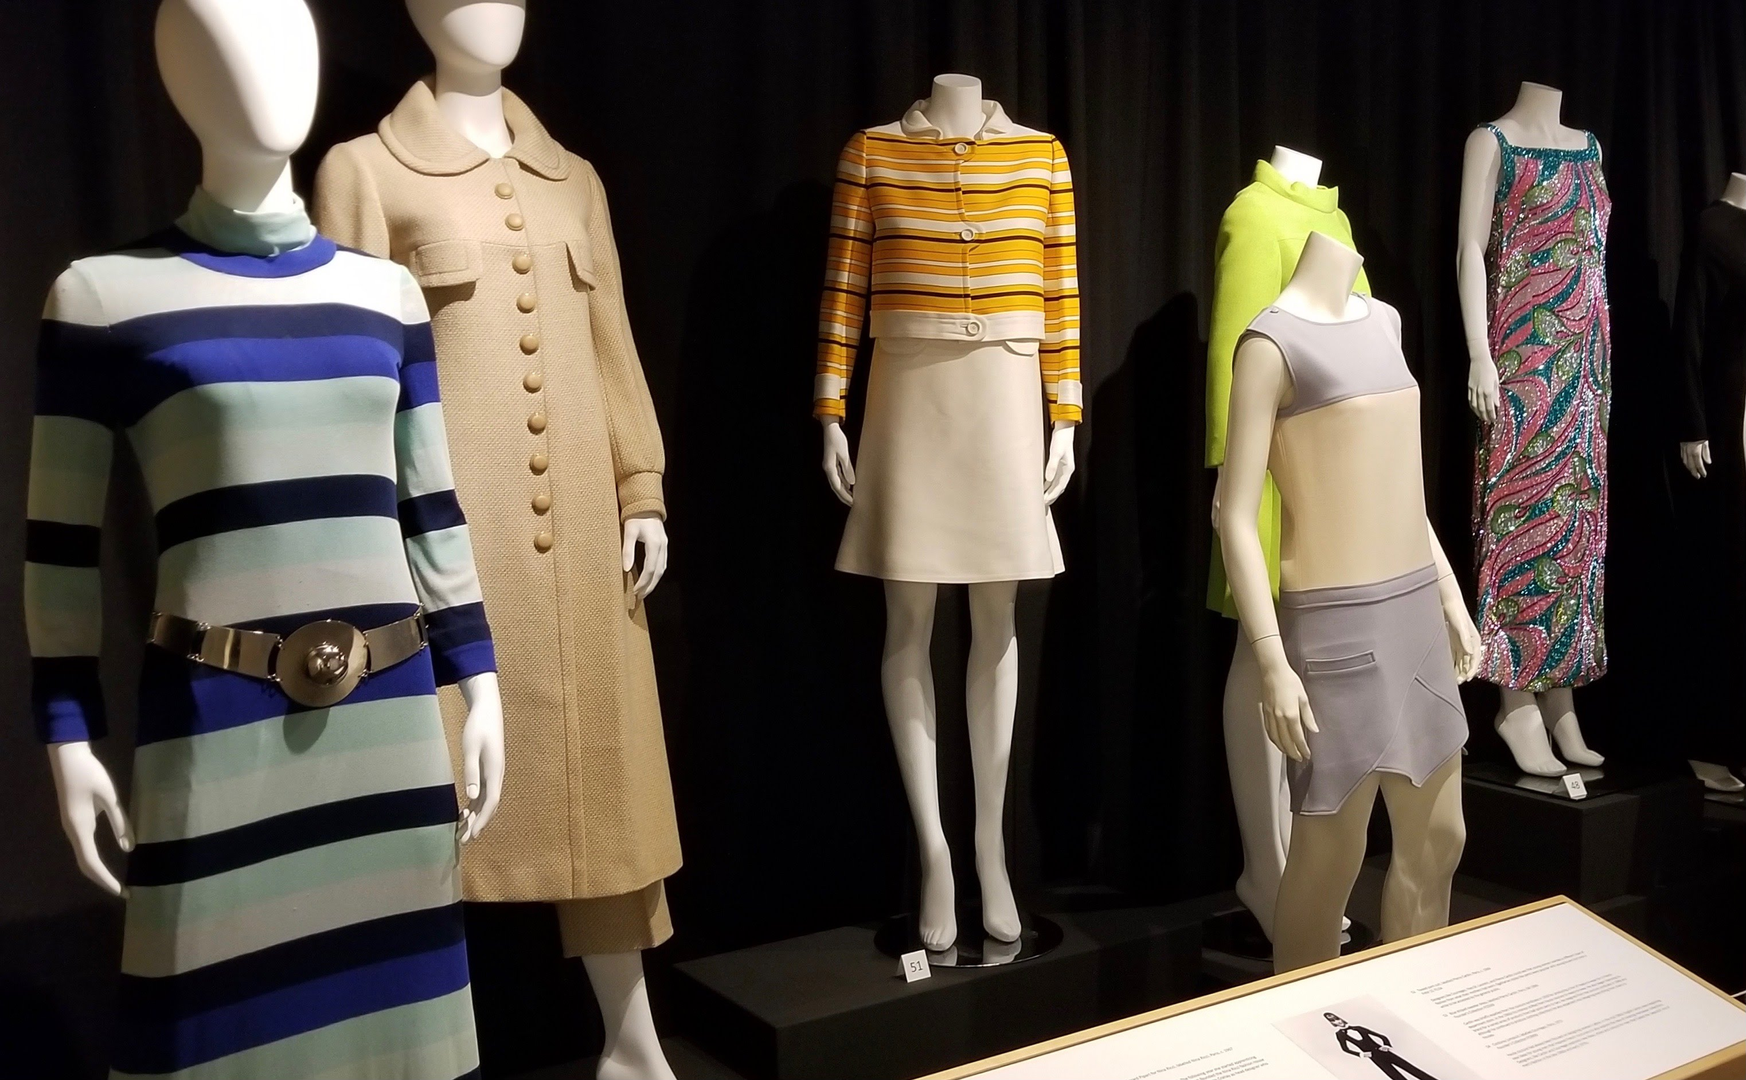 Late 60s fashions by Cardin, Ungaro, and Courreges